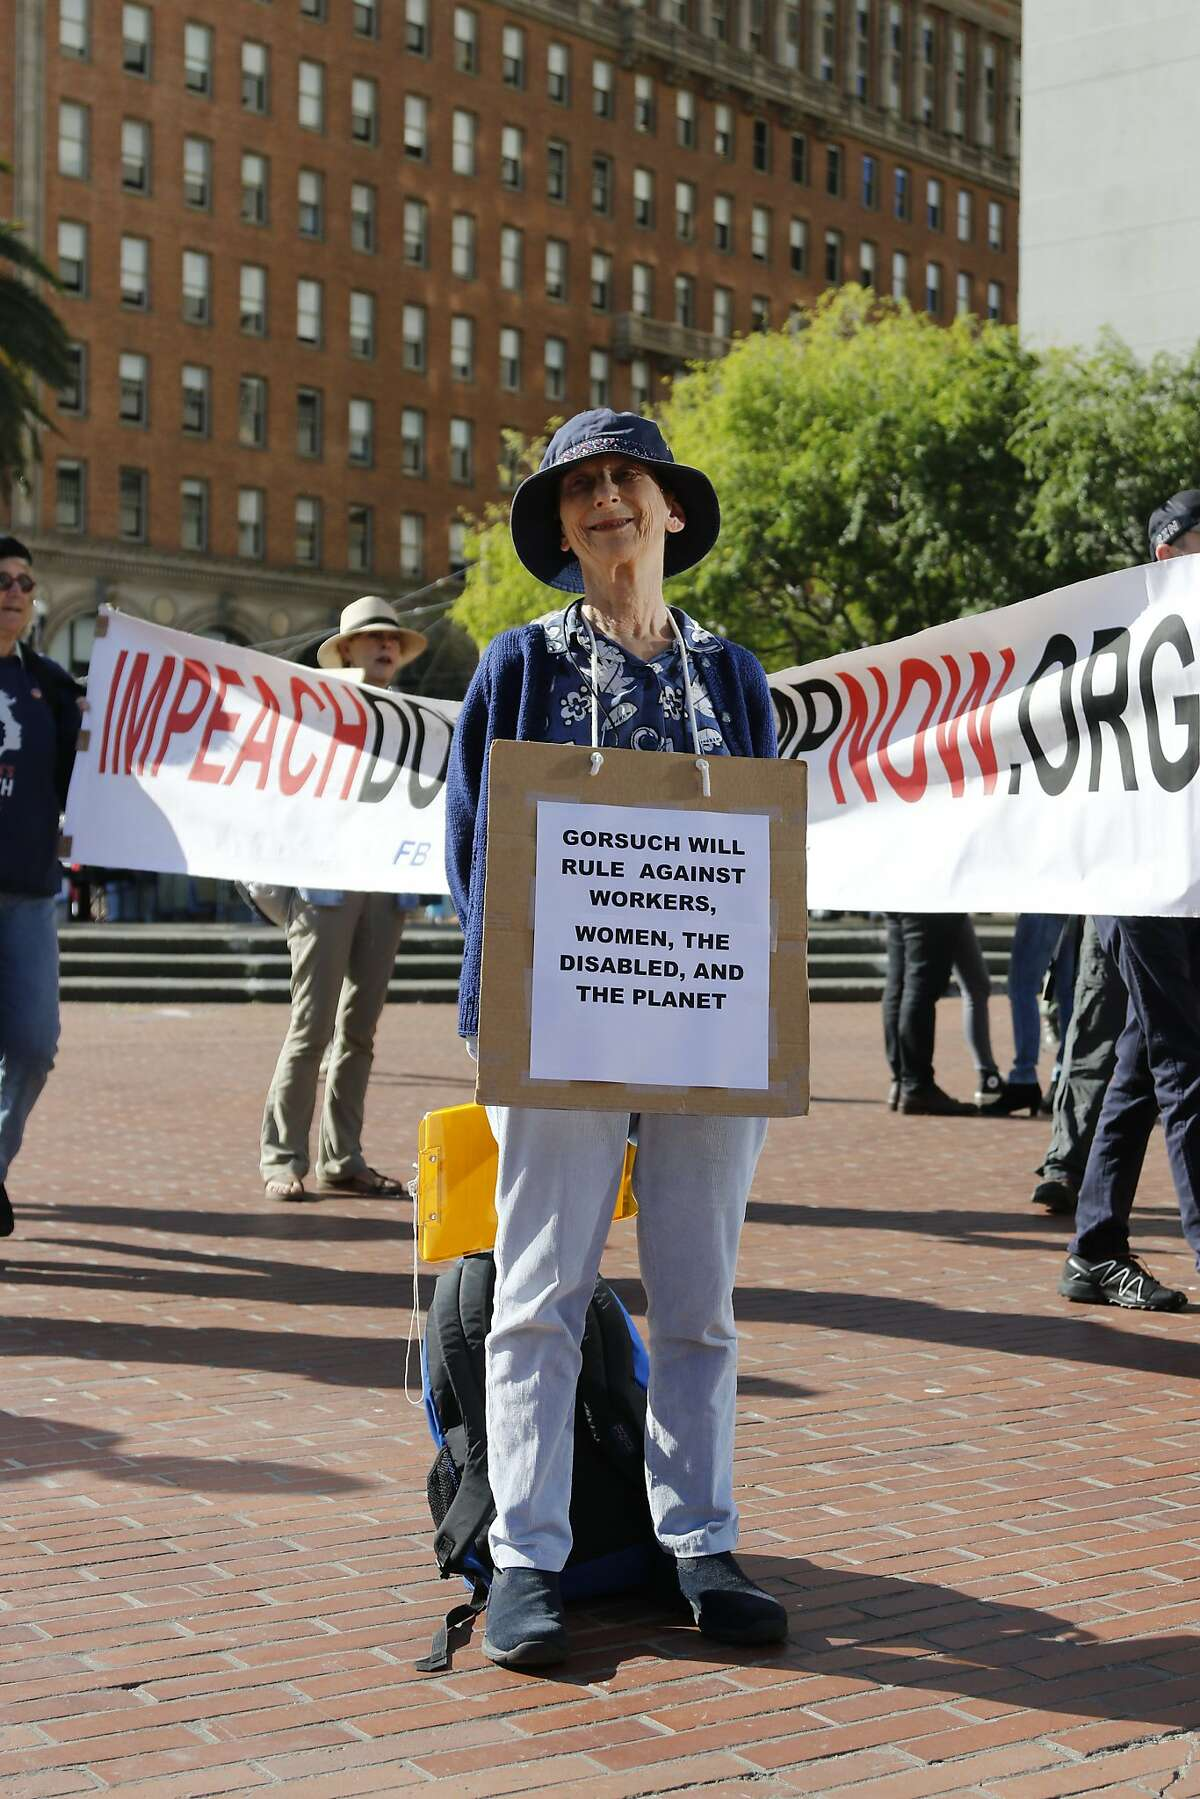 Zipporah Collins, 77, of Berkeley wears a sign at a rally in Justin Herman Plaza in San Francisco on Saturday, April 1, 2017. About 100 people attended this event organized by the People's Defense campaign.